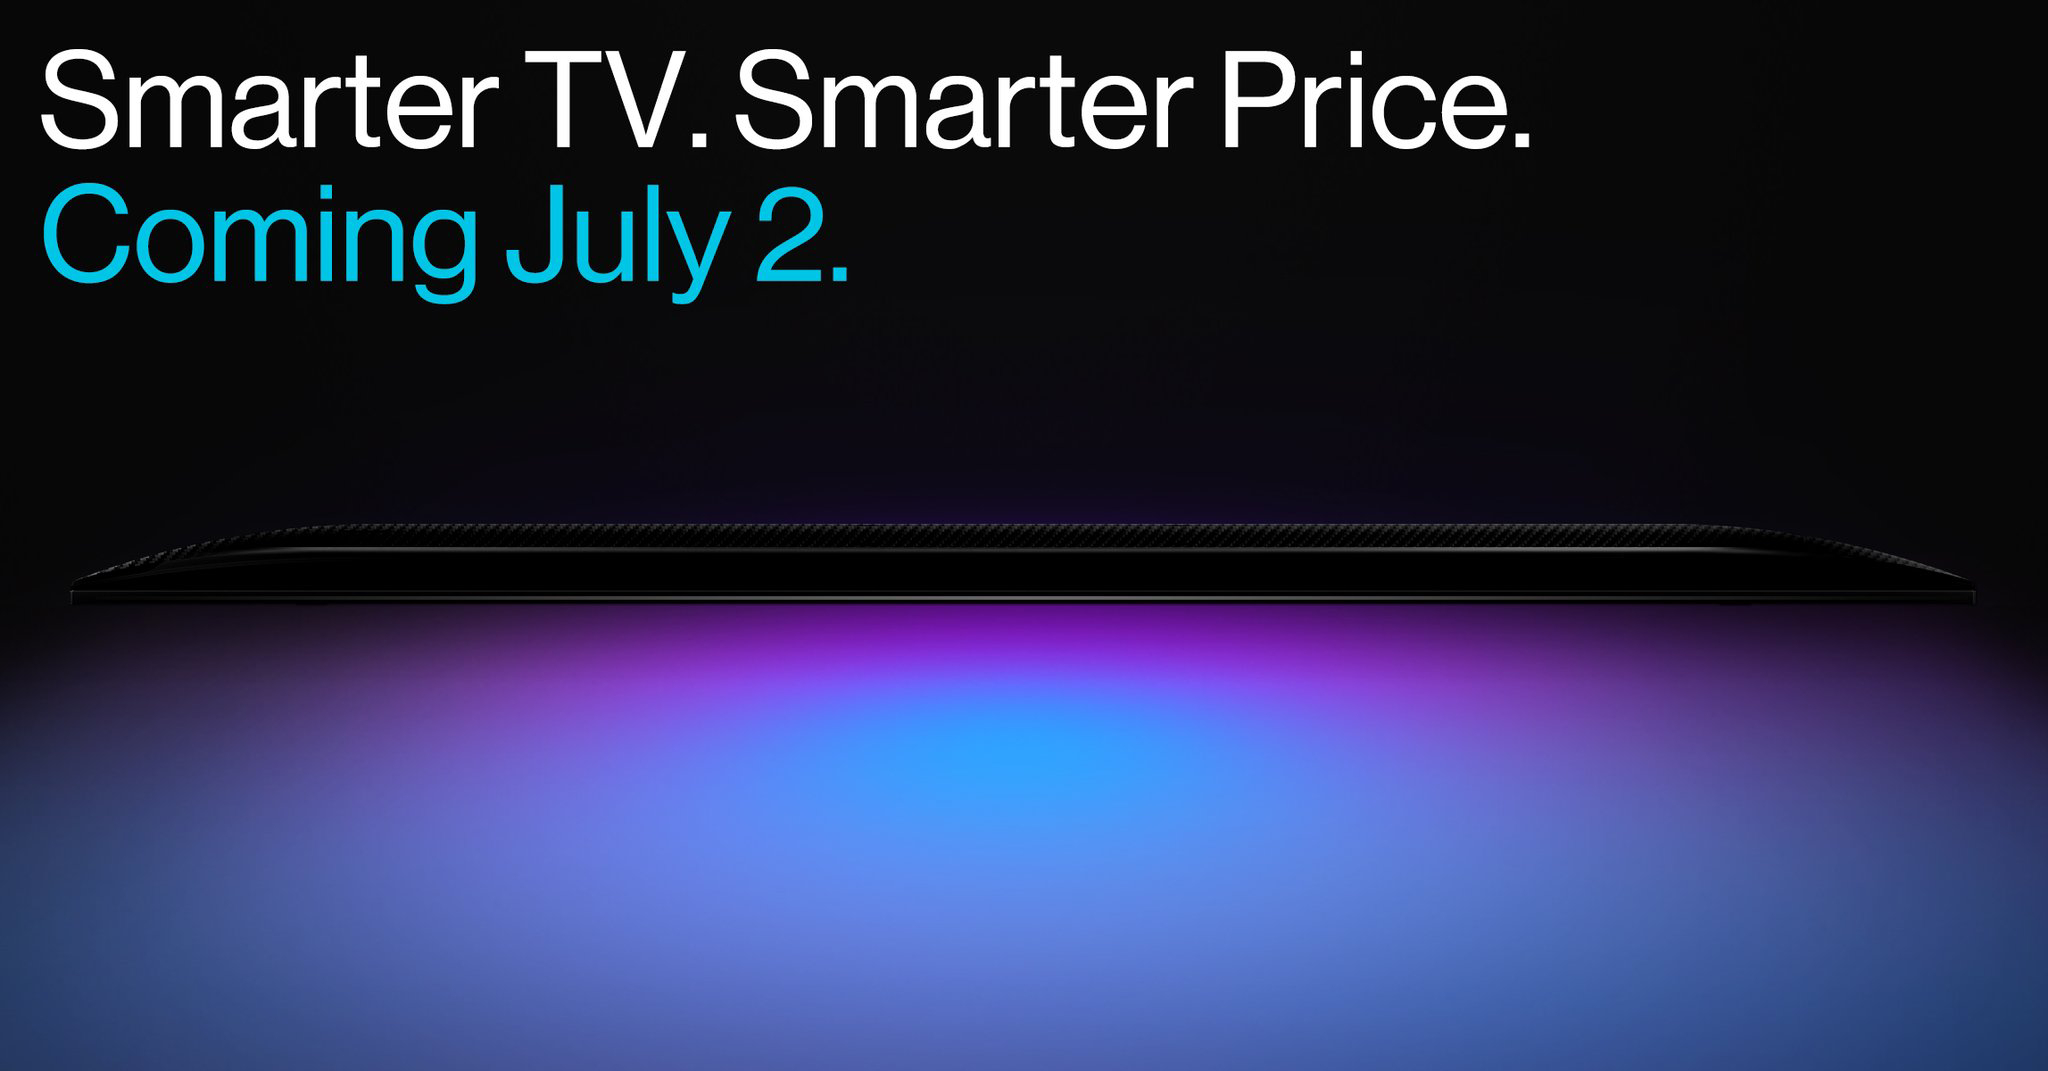 SmartTV launching soon on June 12th in india